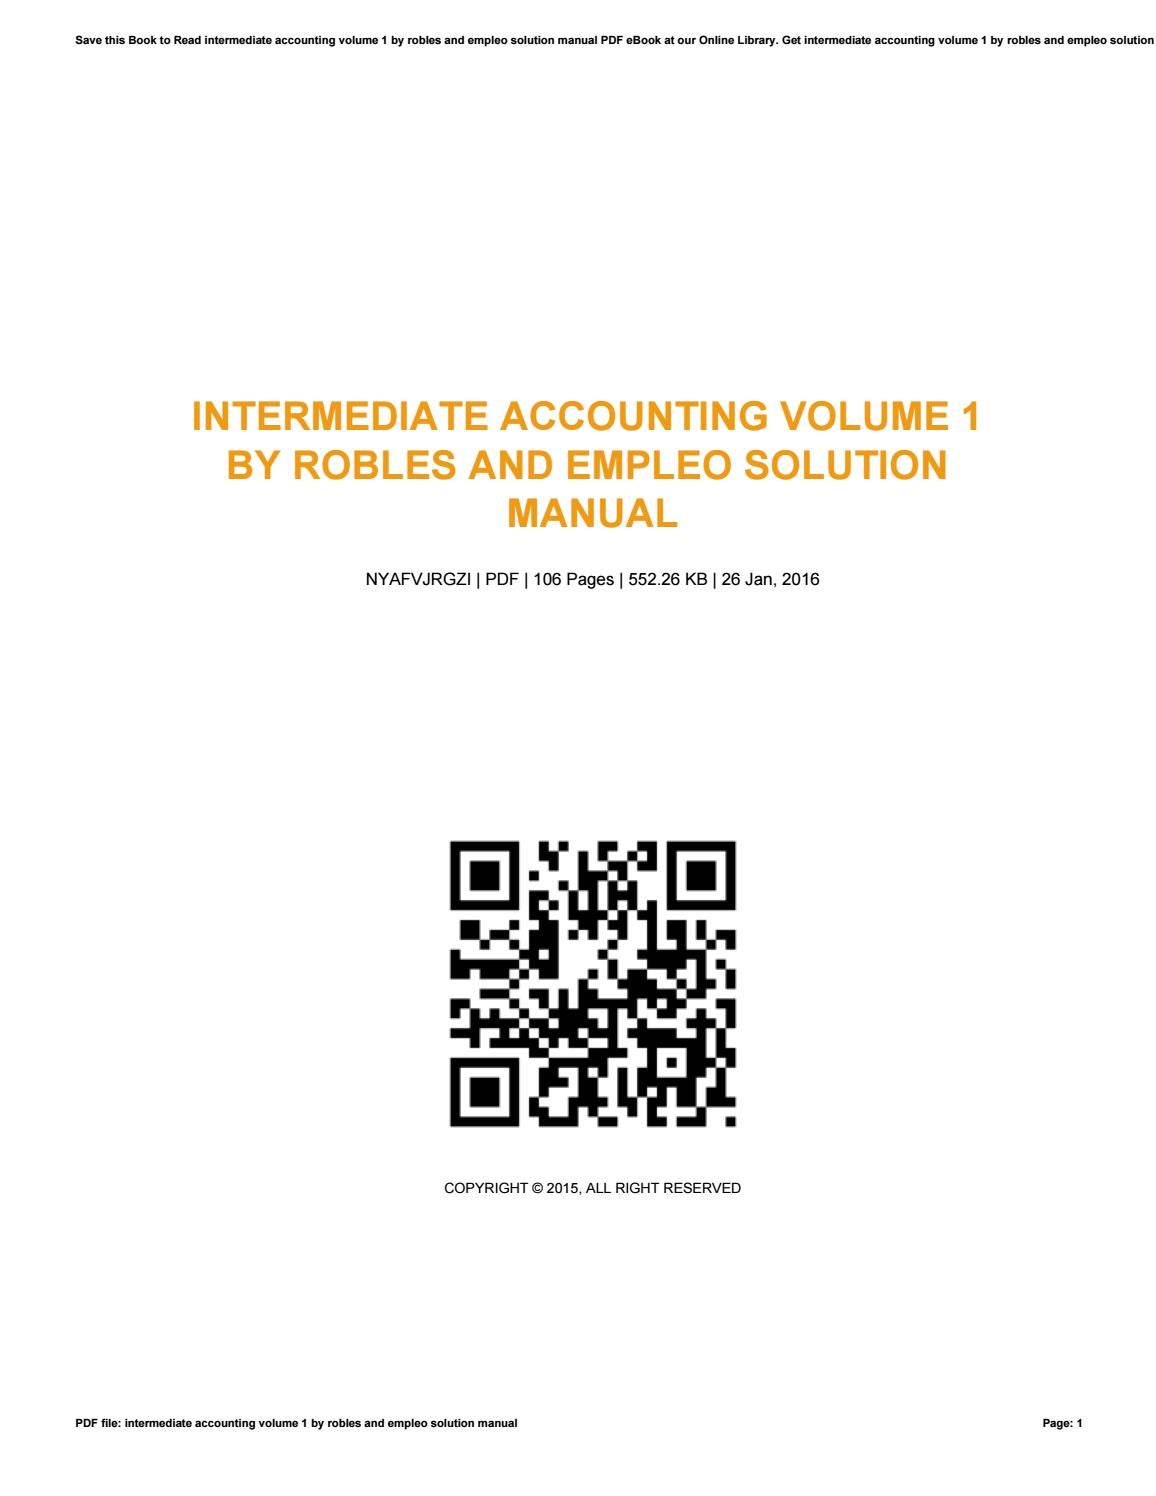 intermediate accounting vol 2 by robles and empleo solution manual